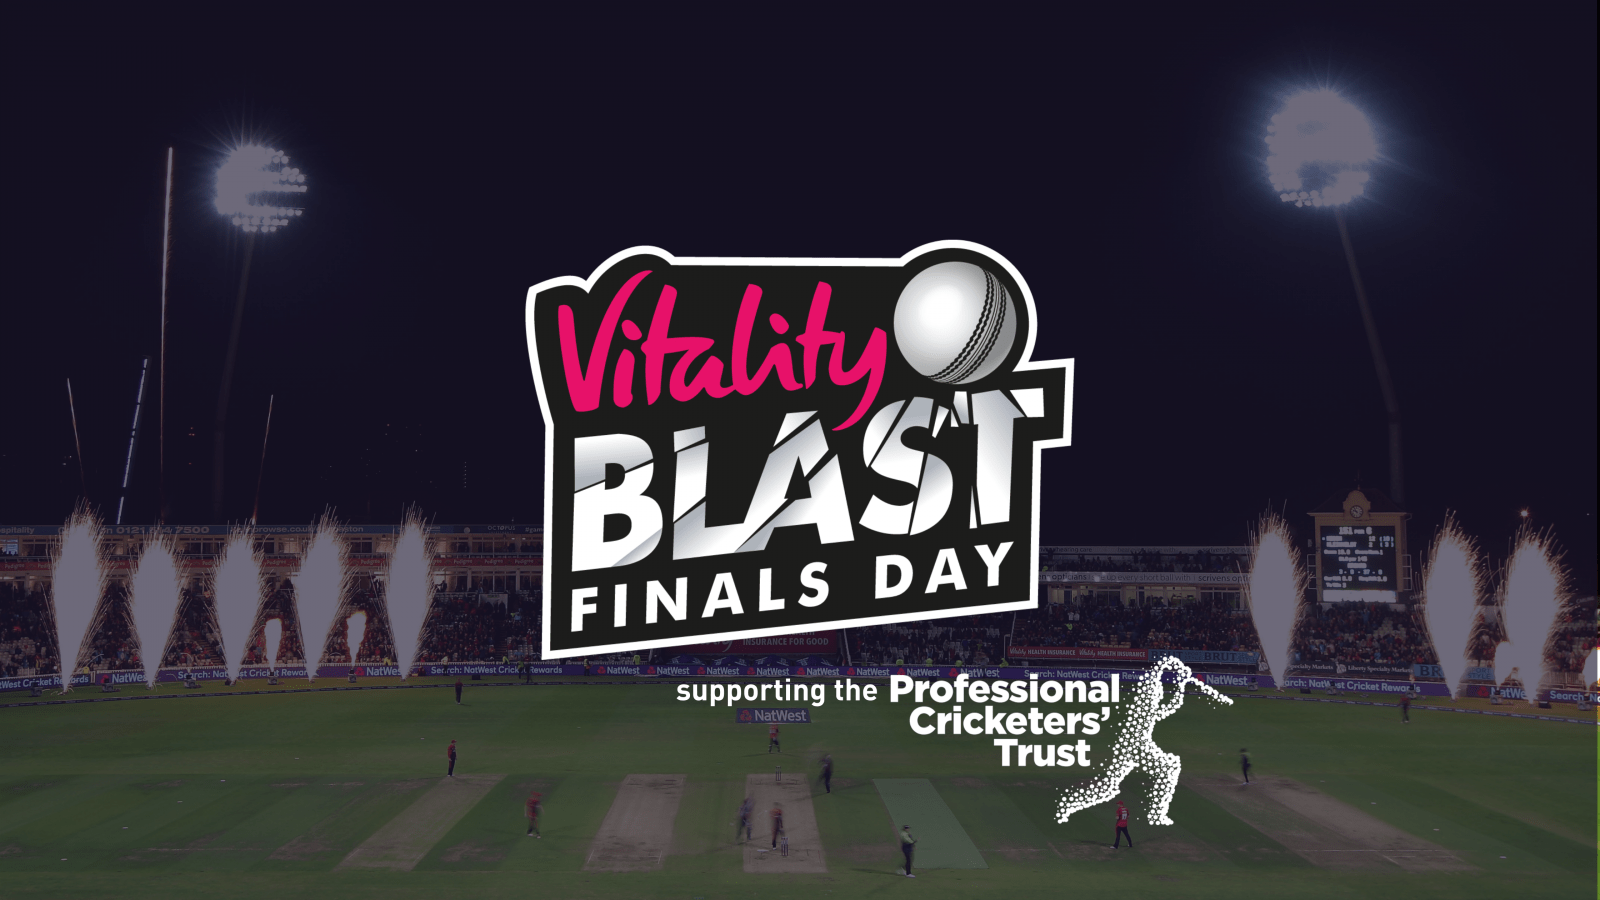 Northamptonshire Supports Professional Cricketers' Trust On Finals Day